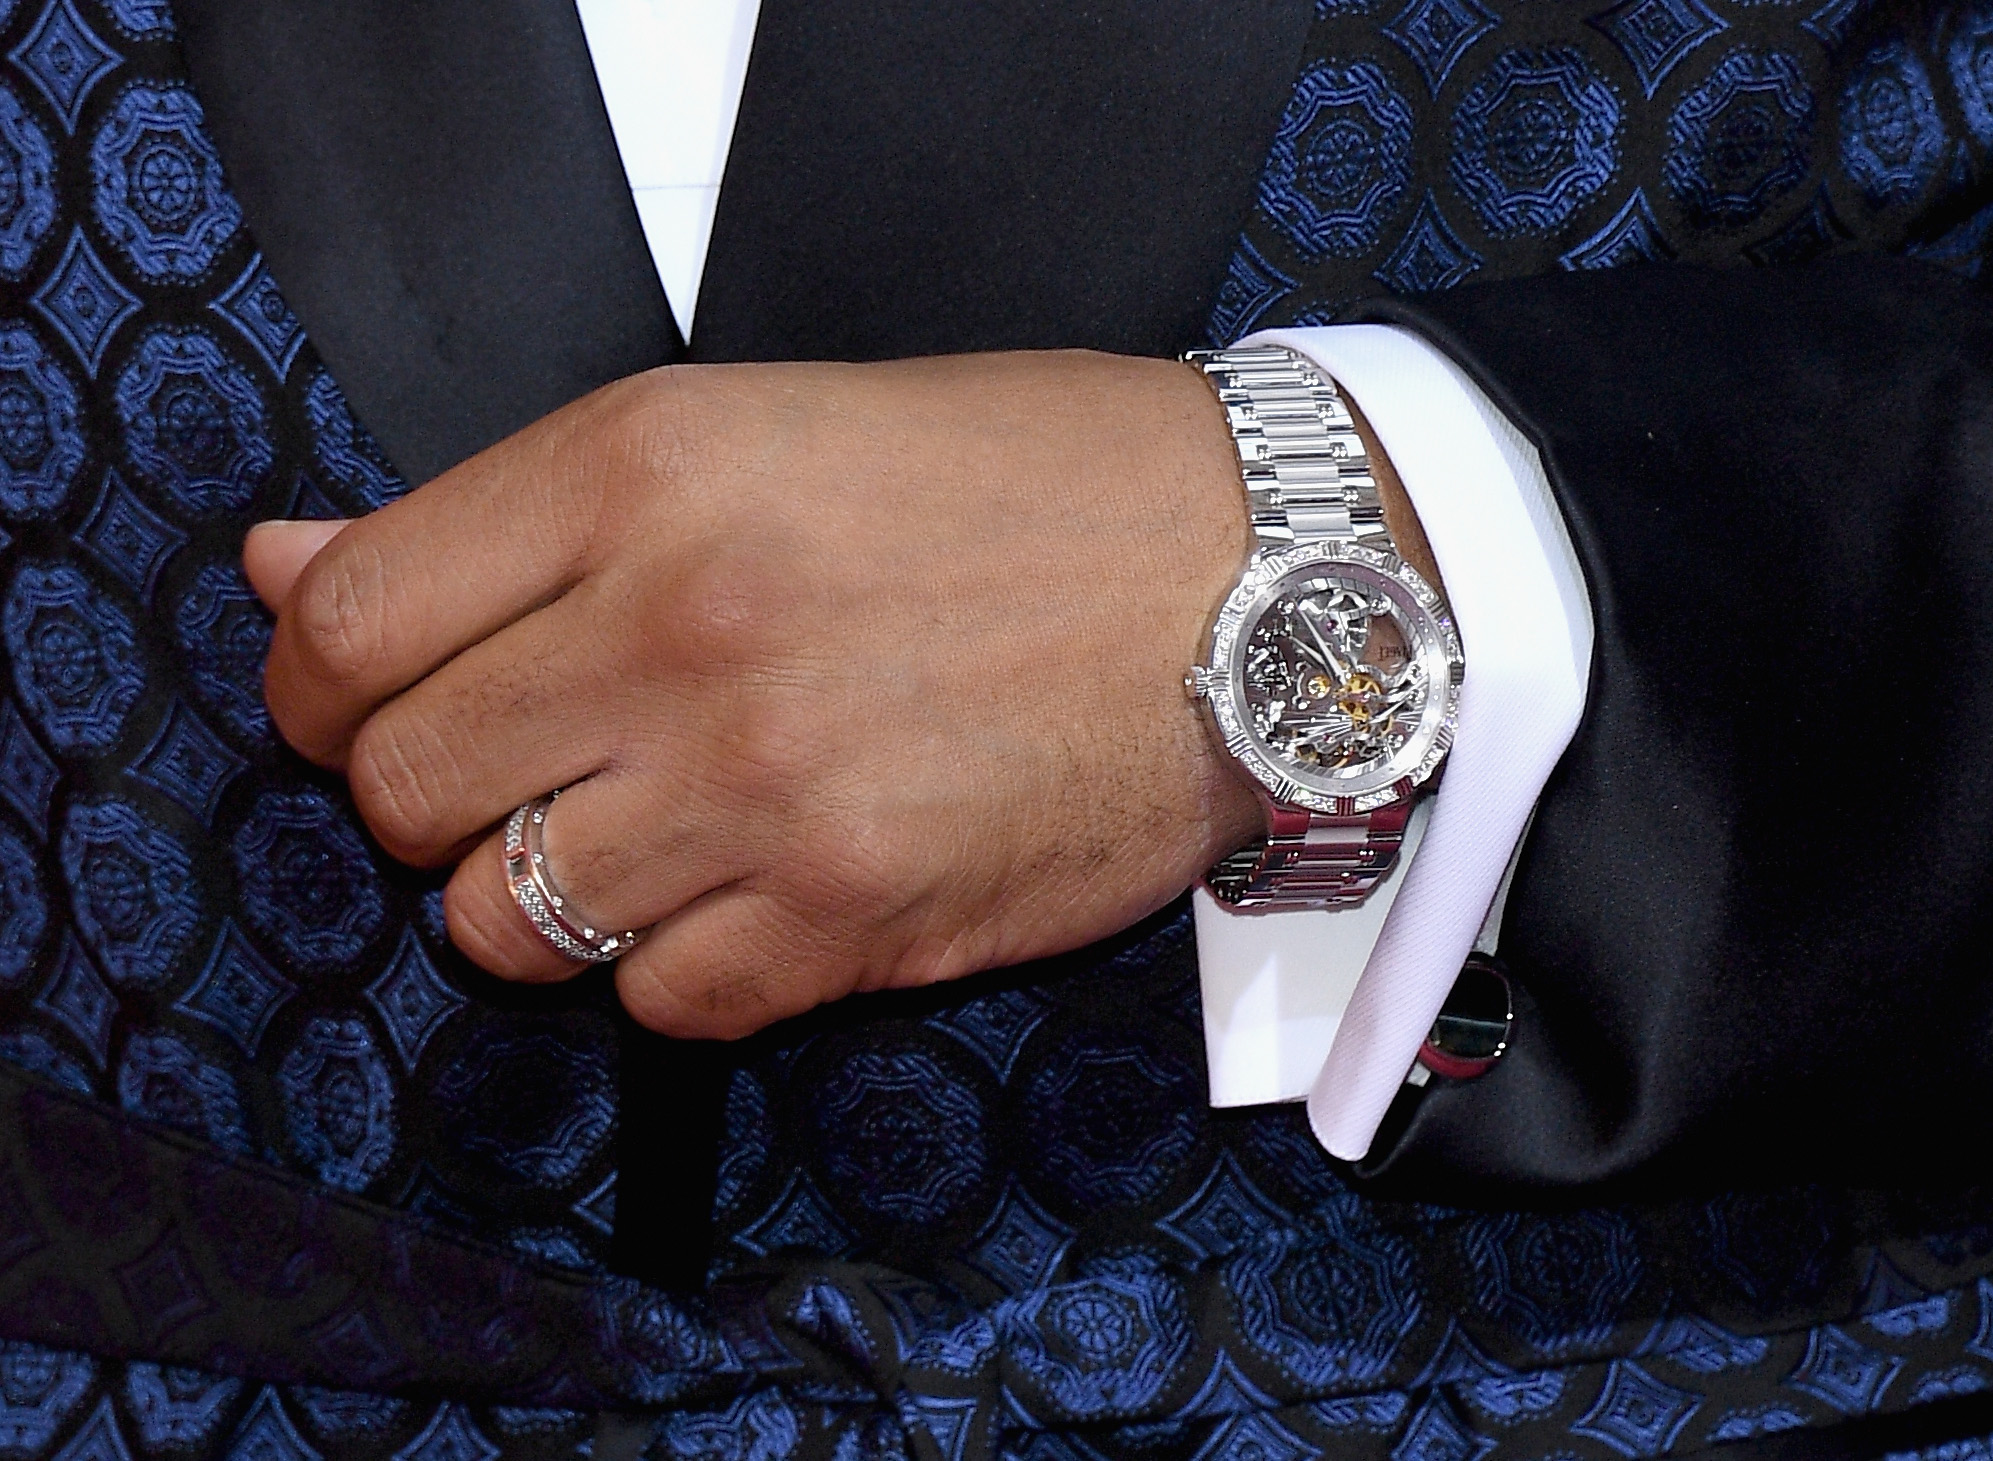 HOLLYWOOD, CA - FEBRUARY 26: Actor Terrence Howard, watch detail, attends the 89th Annual Academy Awards at Hollywood & Highland Center on February 26, 2017 in Hollywood, California. (Photo by Kevork Djansezian/Getty Images)